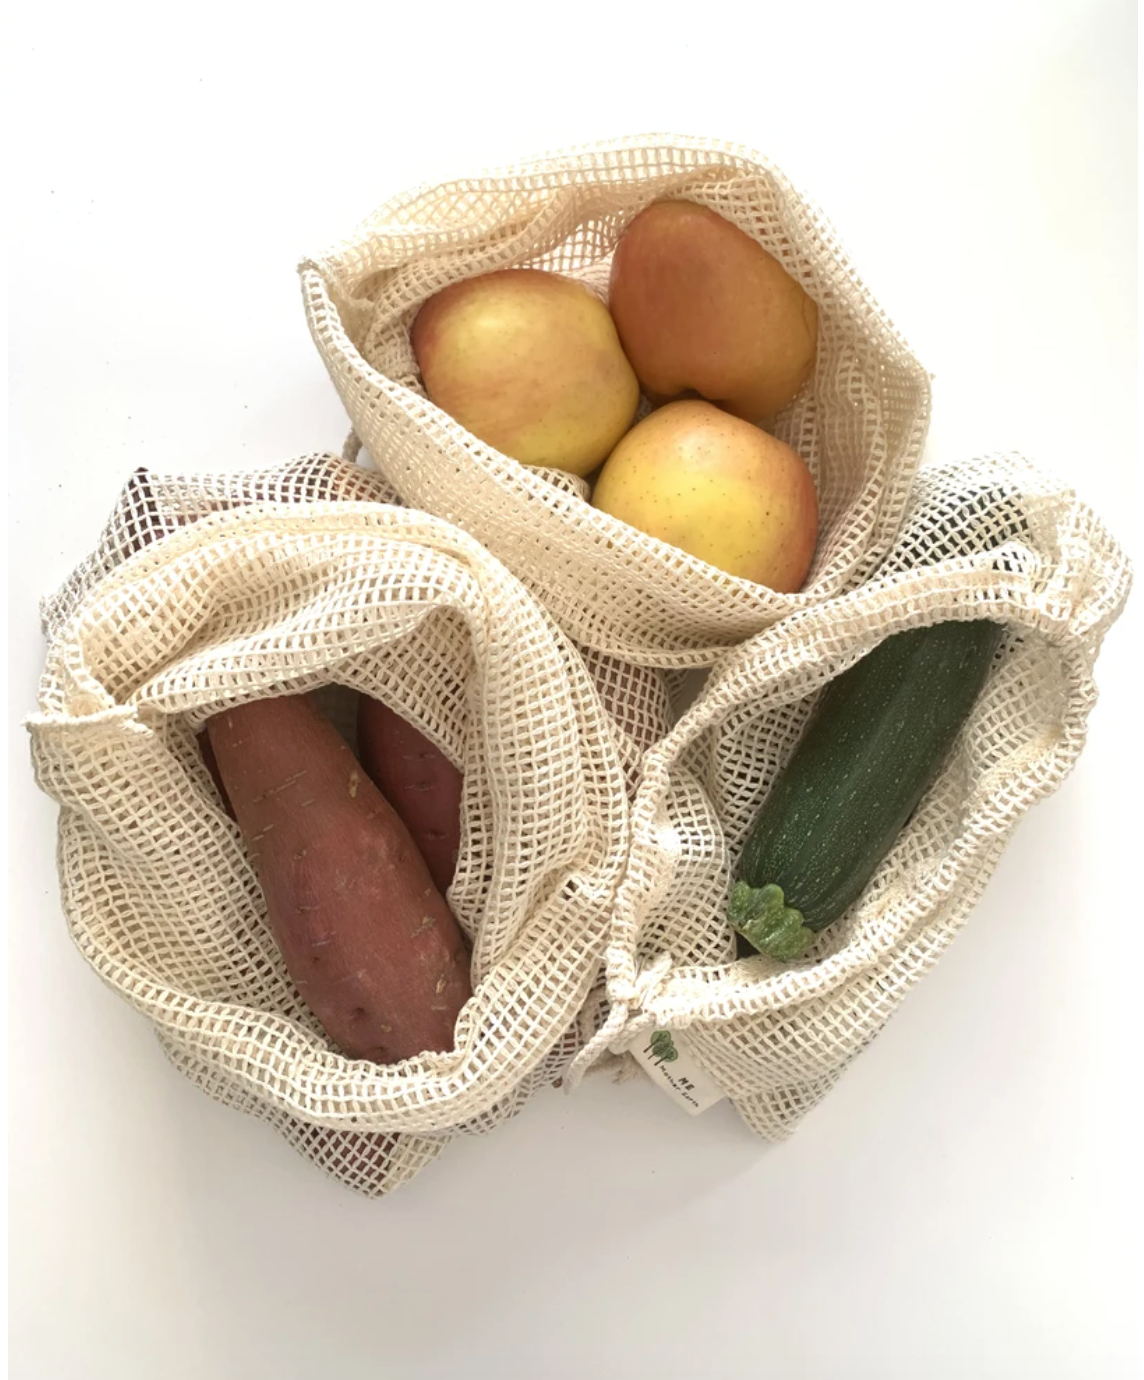 Set of 3 mesh cotton produce bags